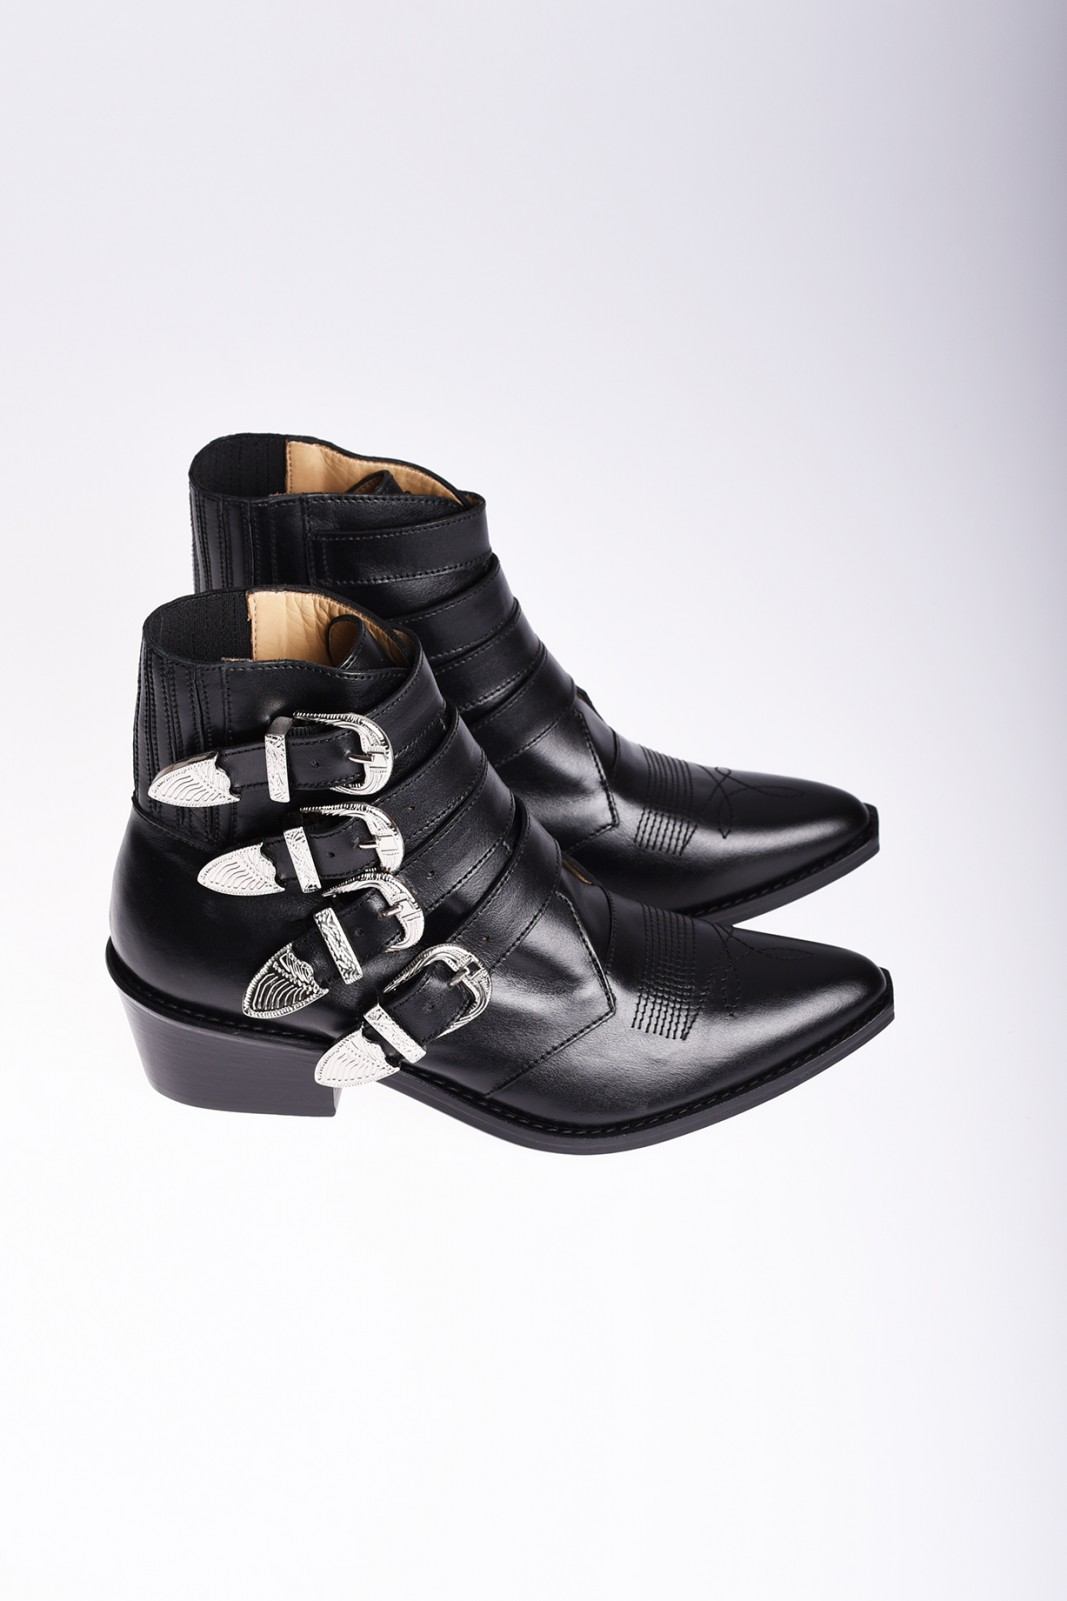 TOGA PULLA low boots